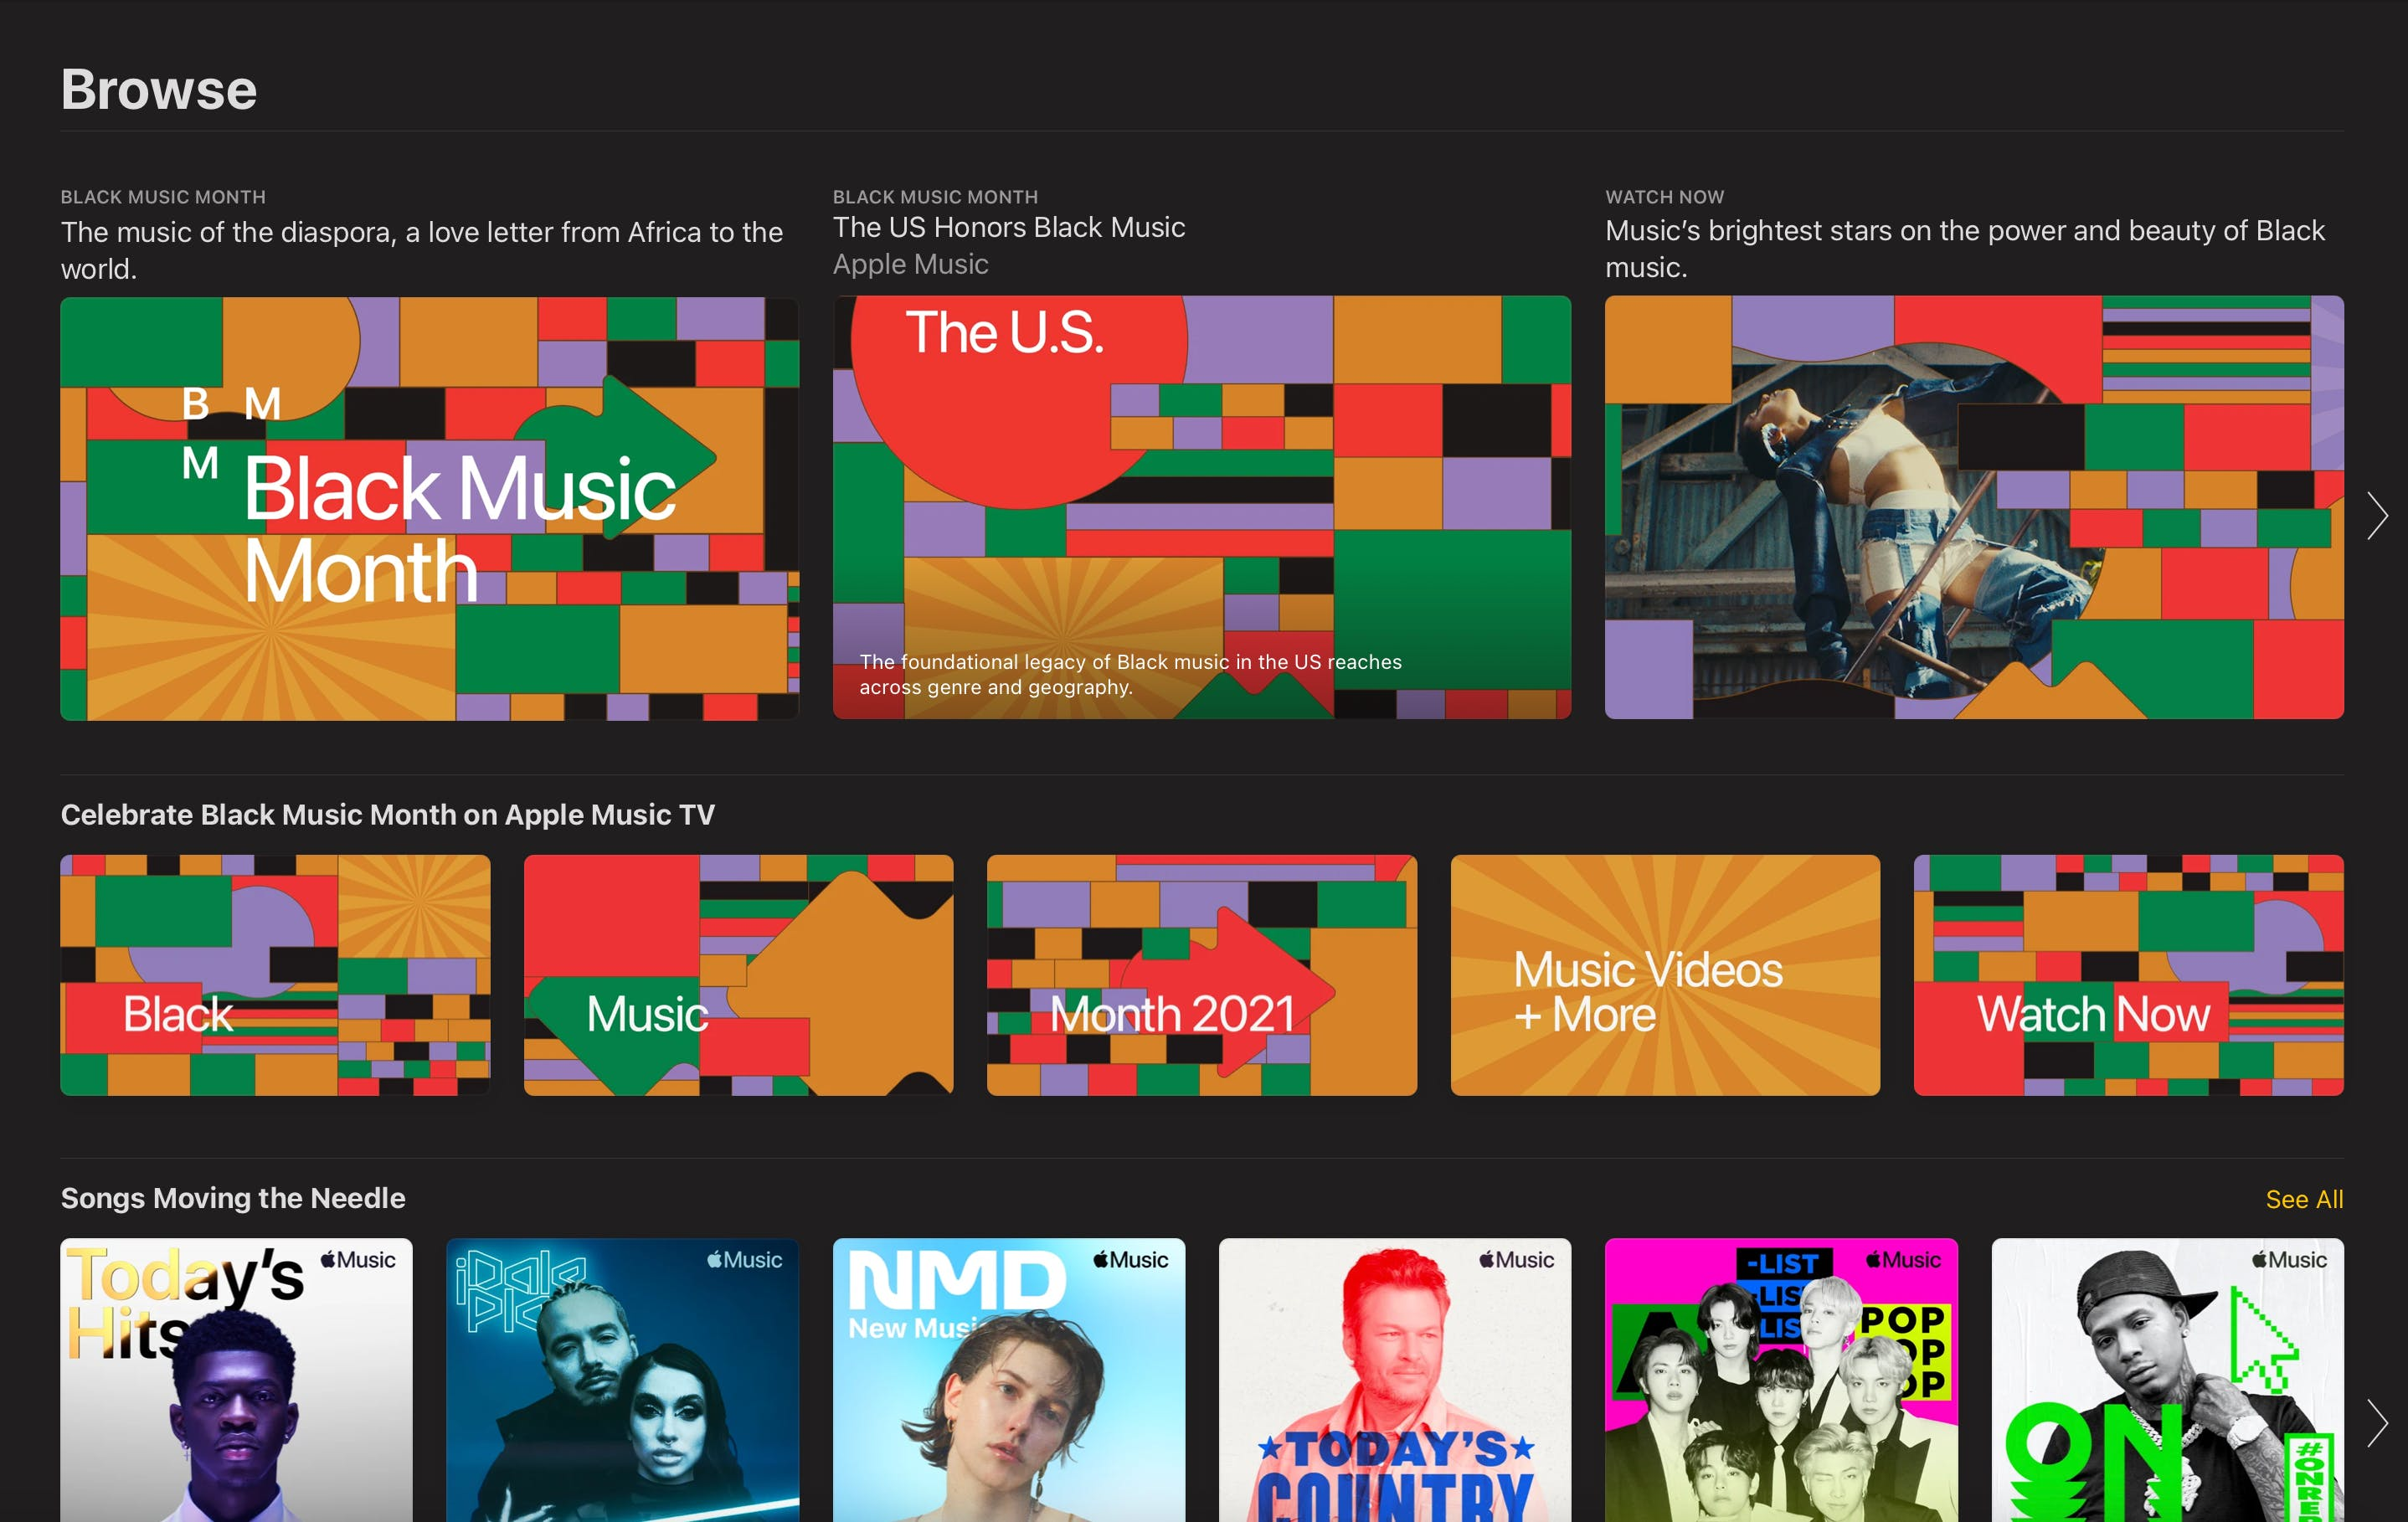 applemusic.com Black Music Month browse take over